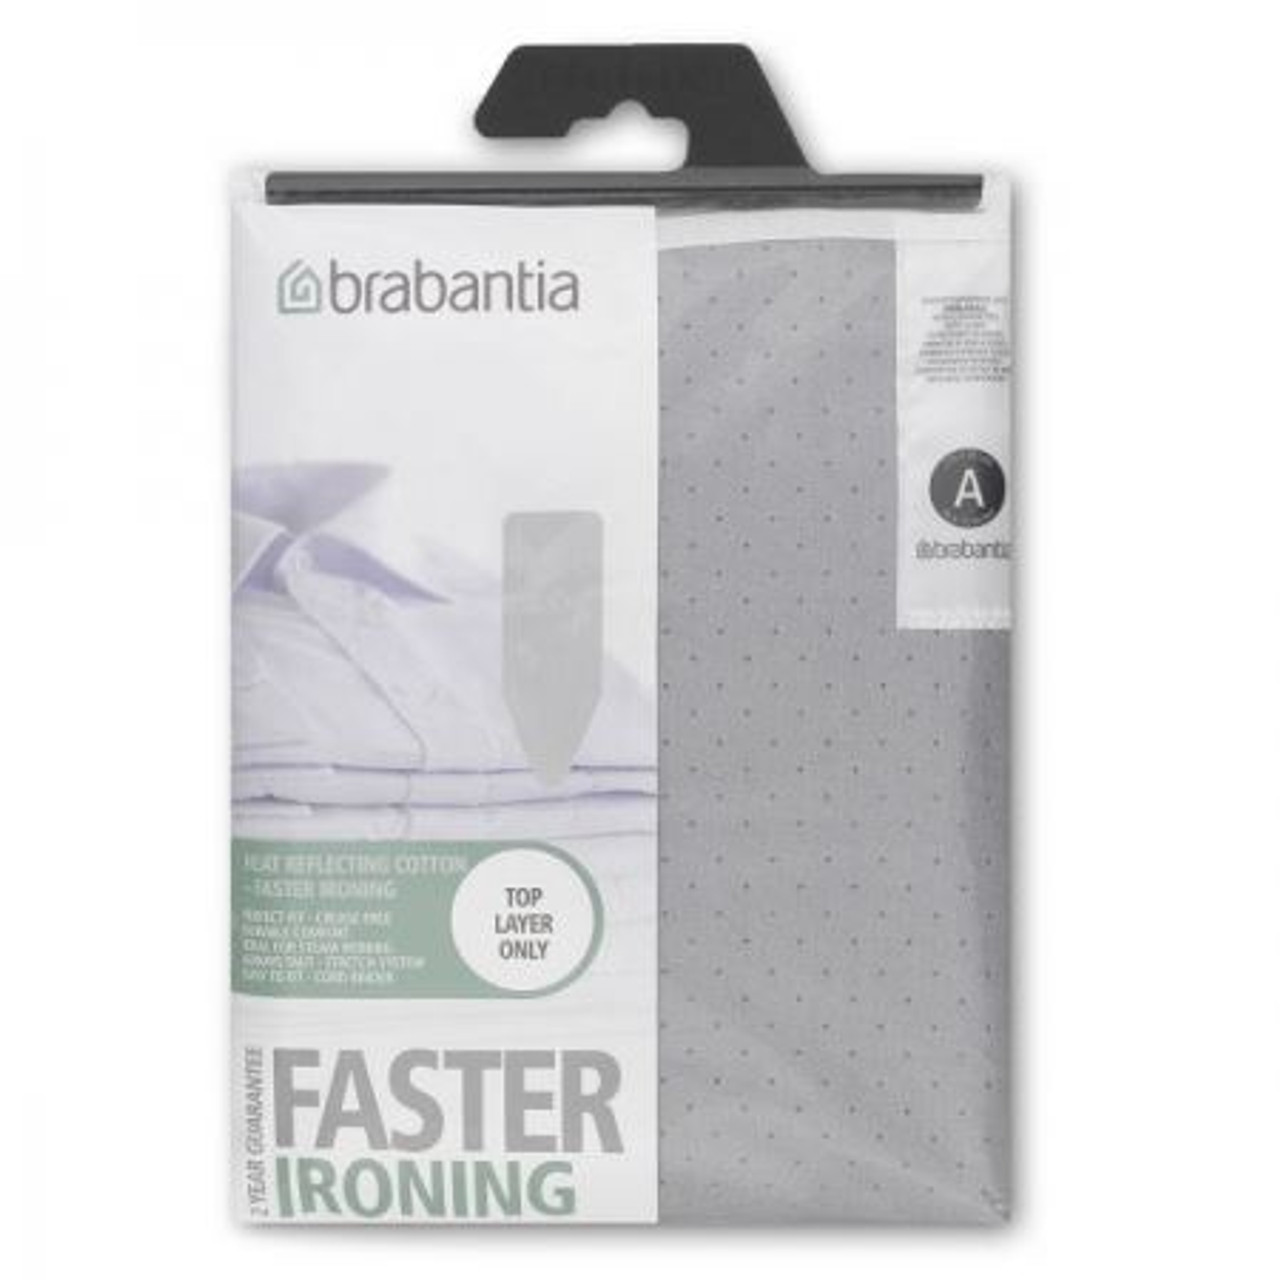 Brabantia Metallised Cotton Ironing Board Cover